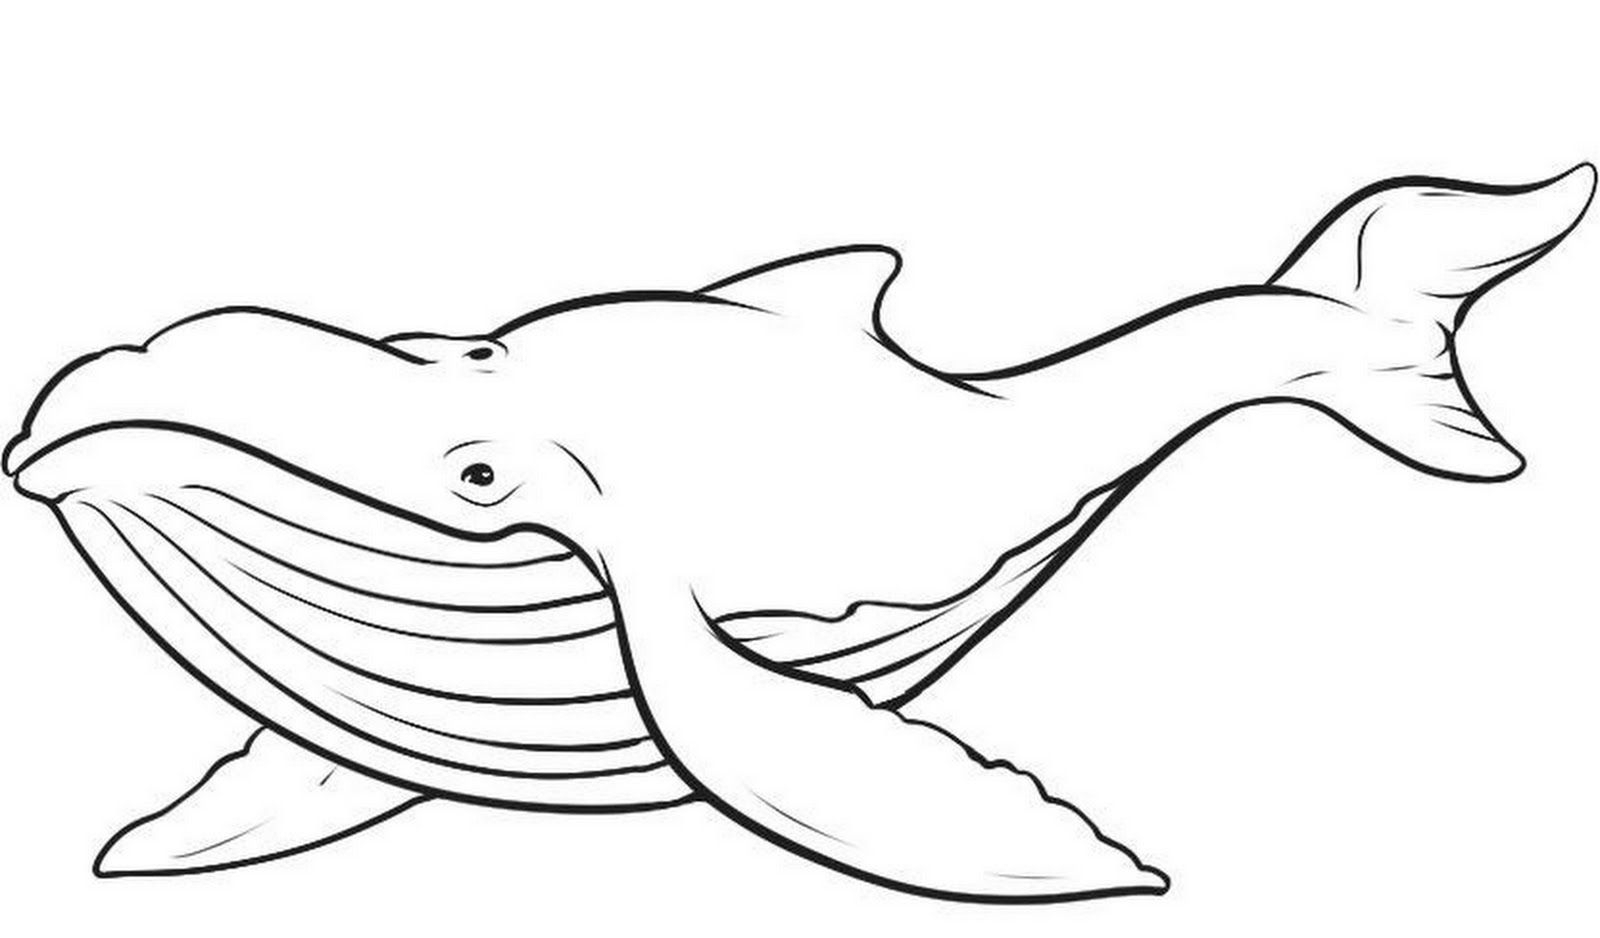 cartoon whale coloring page printable whale coloring pages stpetefestorg whale cartoon coloring page